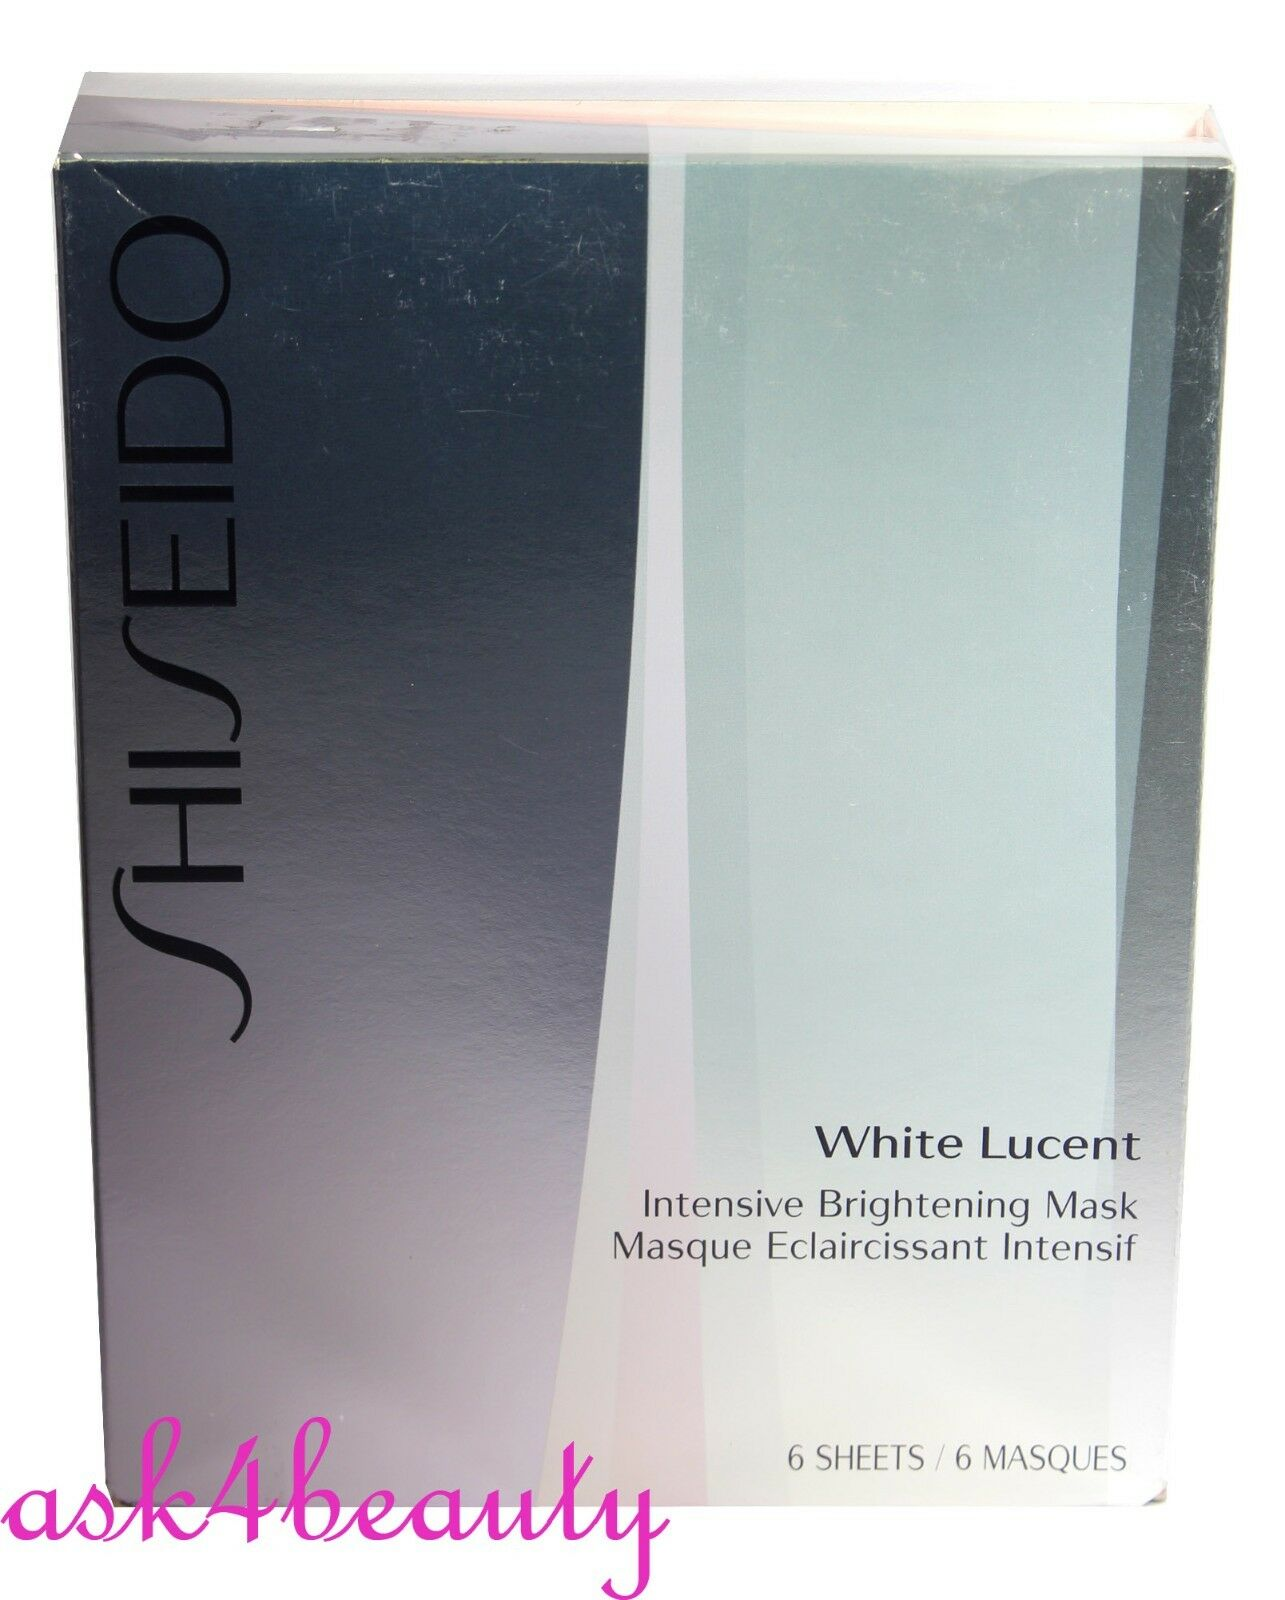 Shiseido Cleanser 6pcs White Lucent Intensive Brightening Mask For Naturgo Mud Picture 1 Of 3